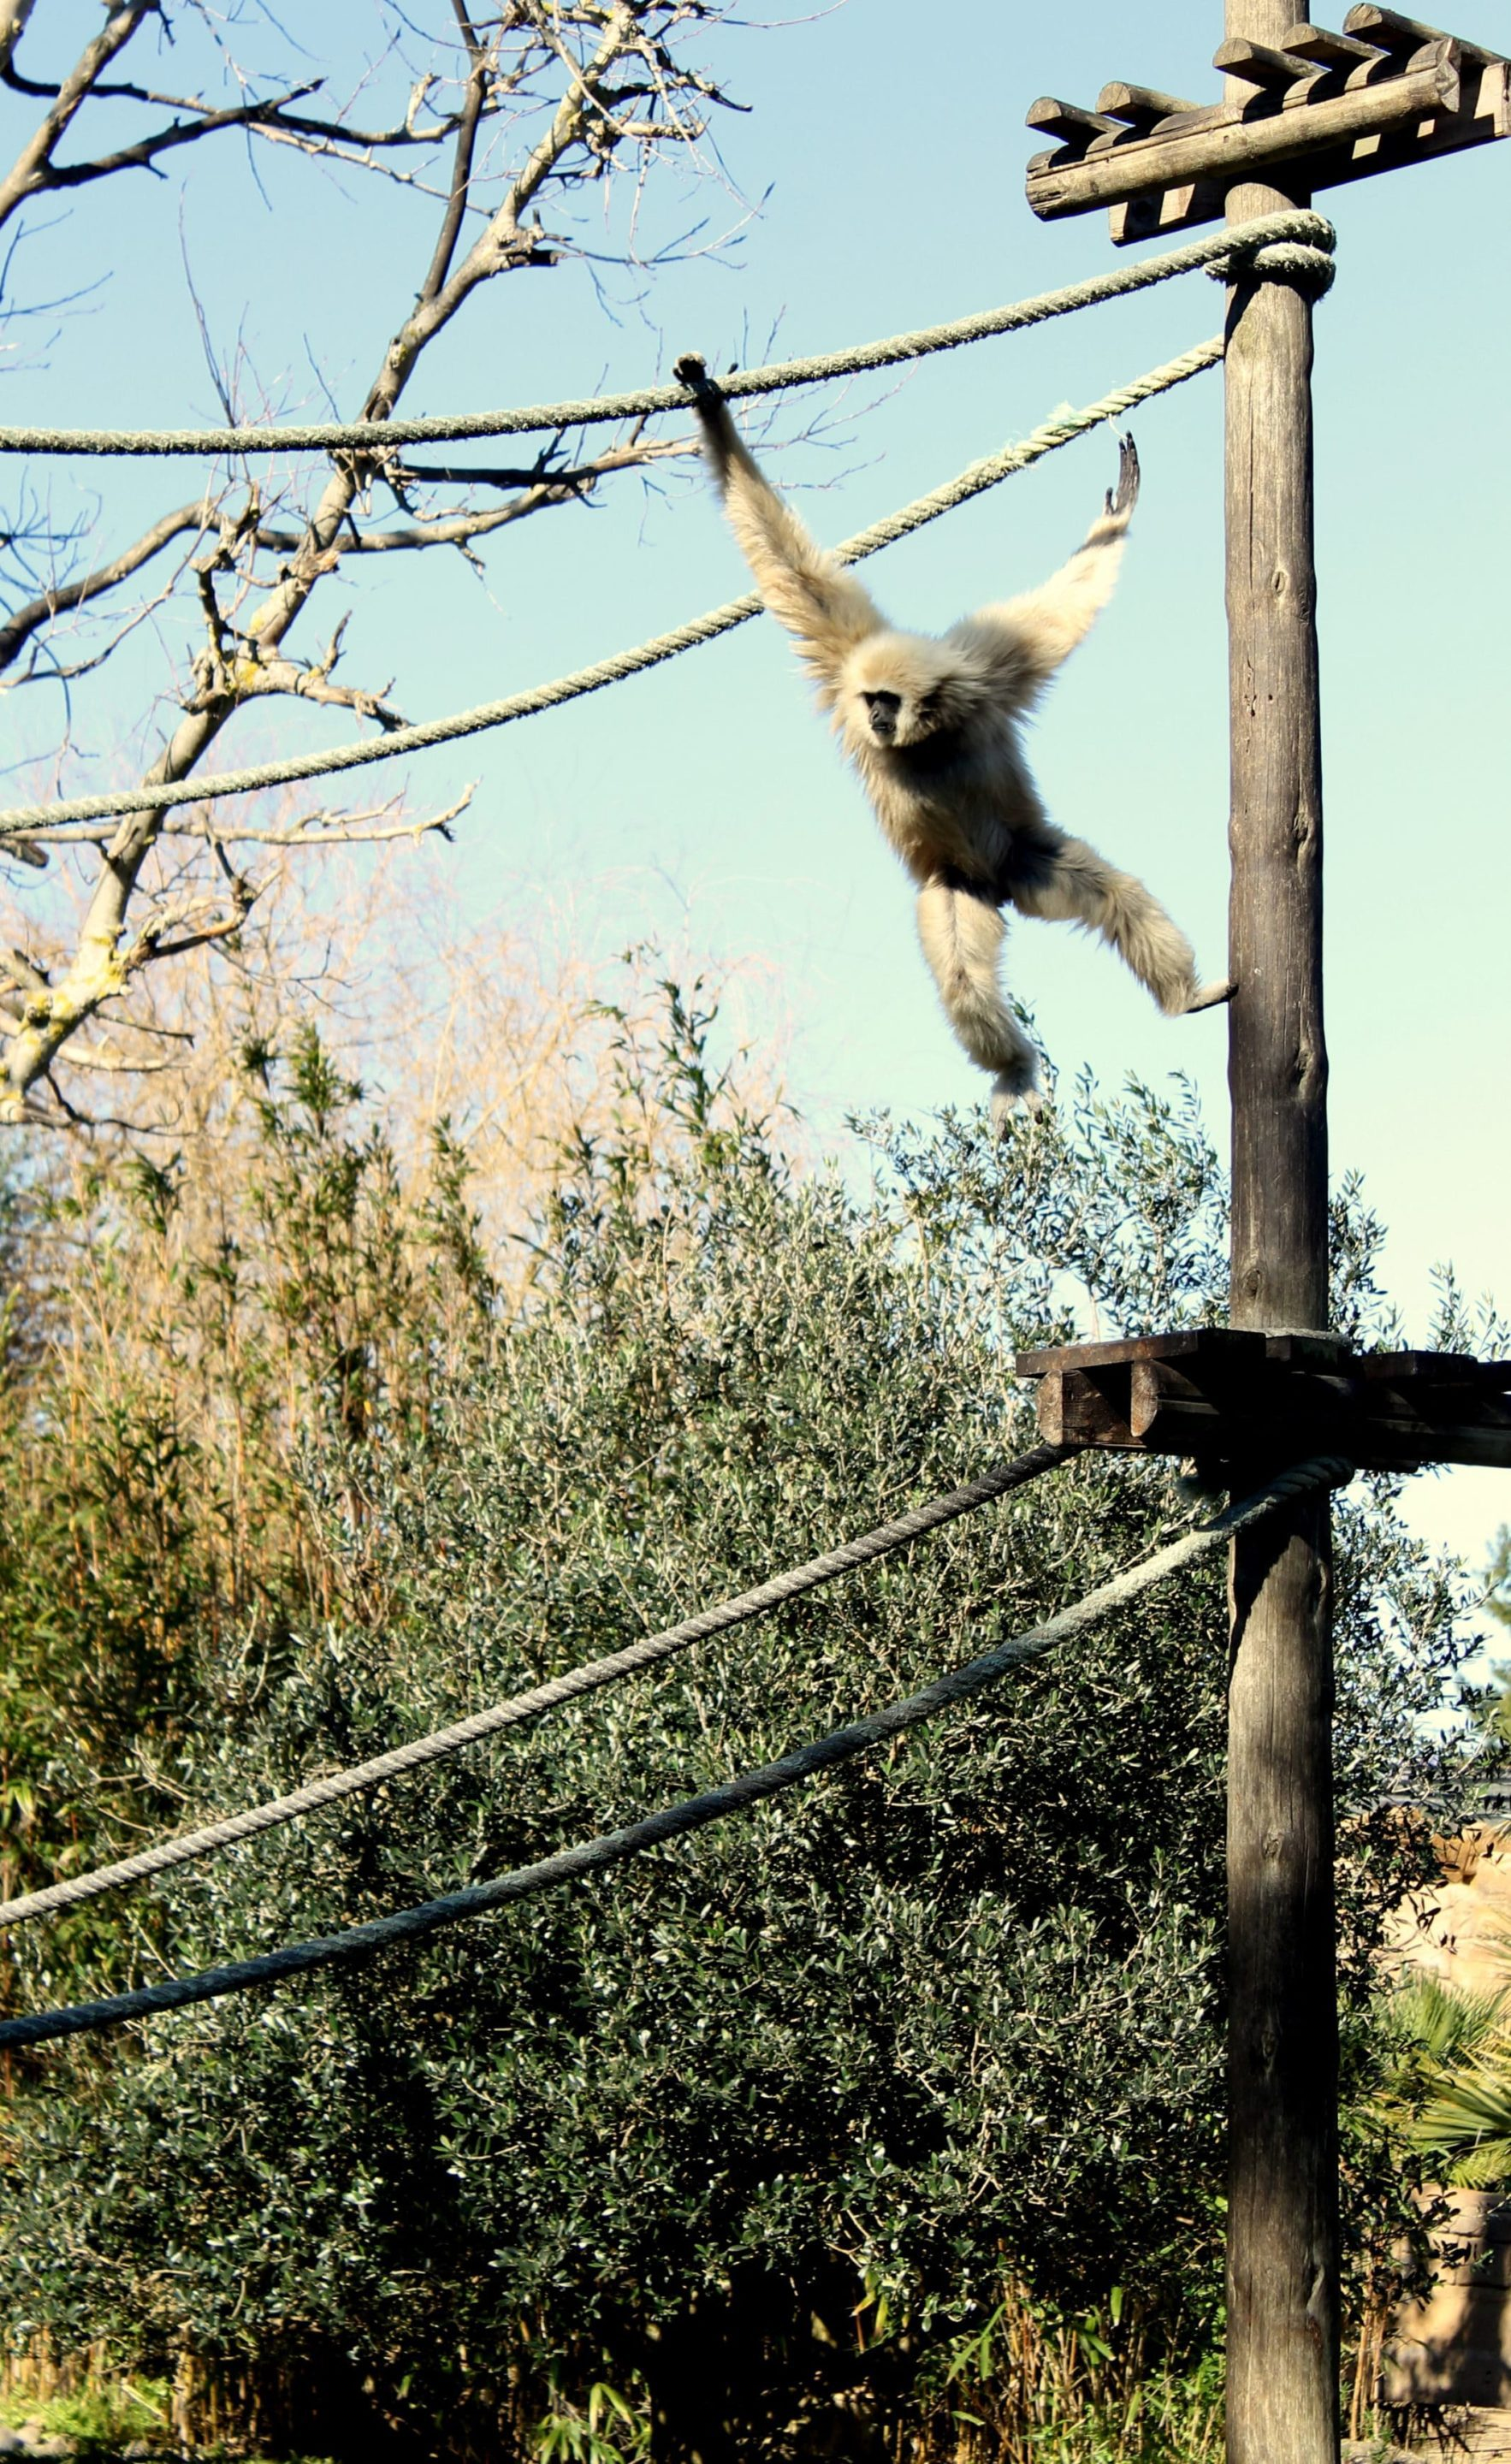 Children of all ages will be delighted by the active monkeys at Zoo de Lagos.